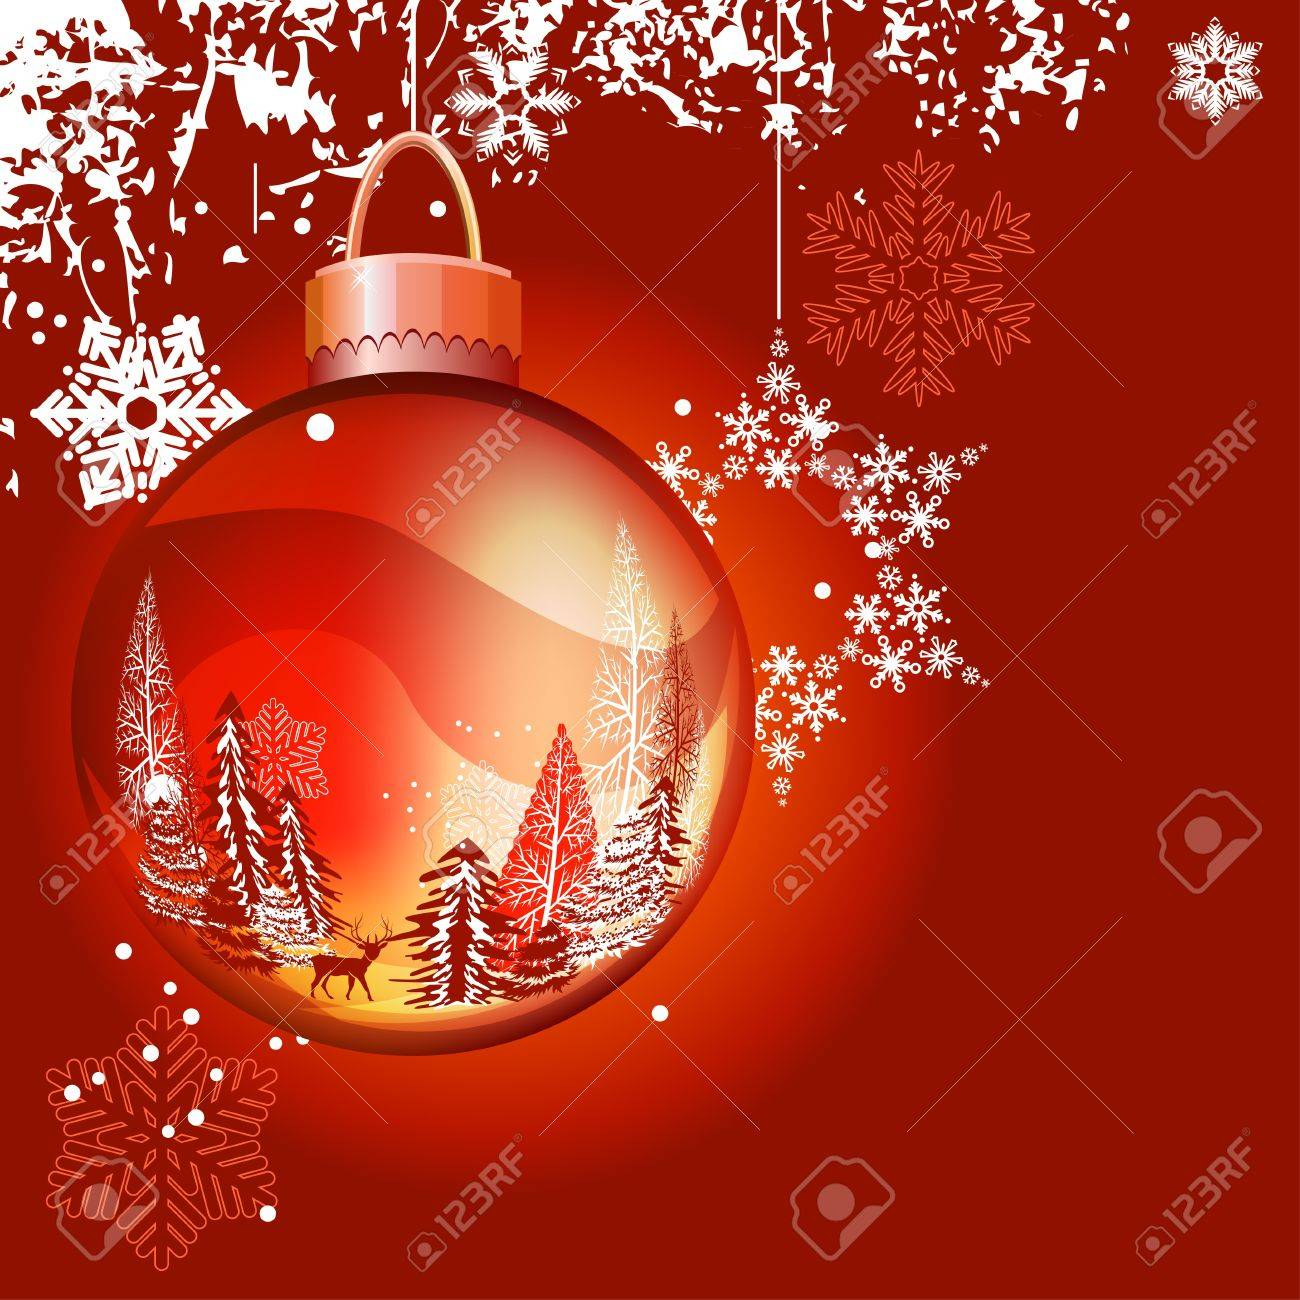 Christmas background with ball and snowflakes Stock Vector - 10614889